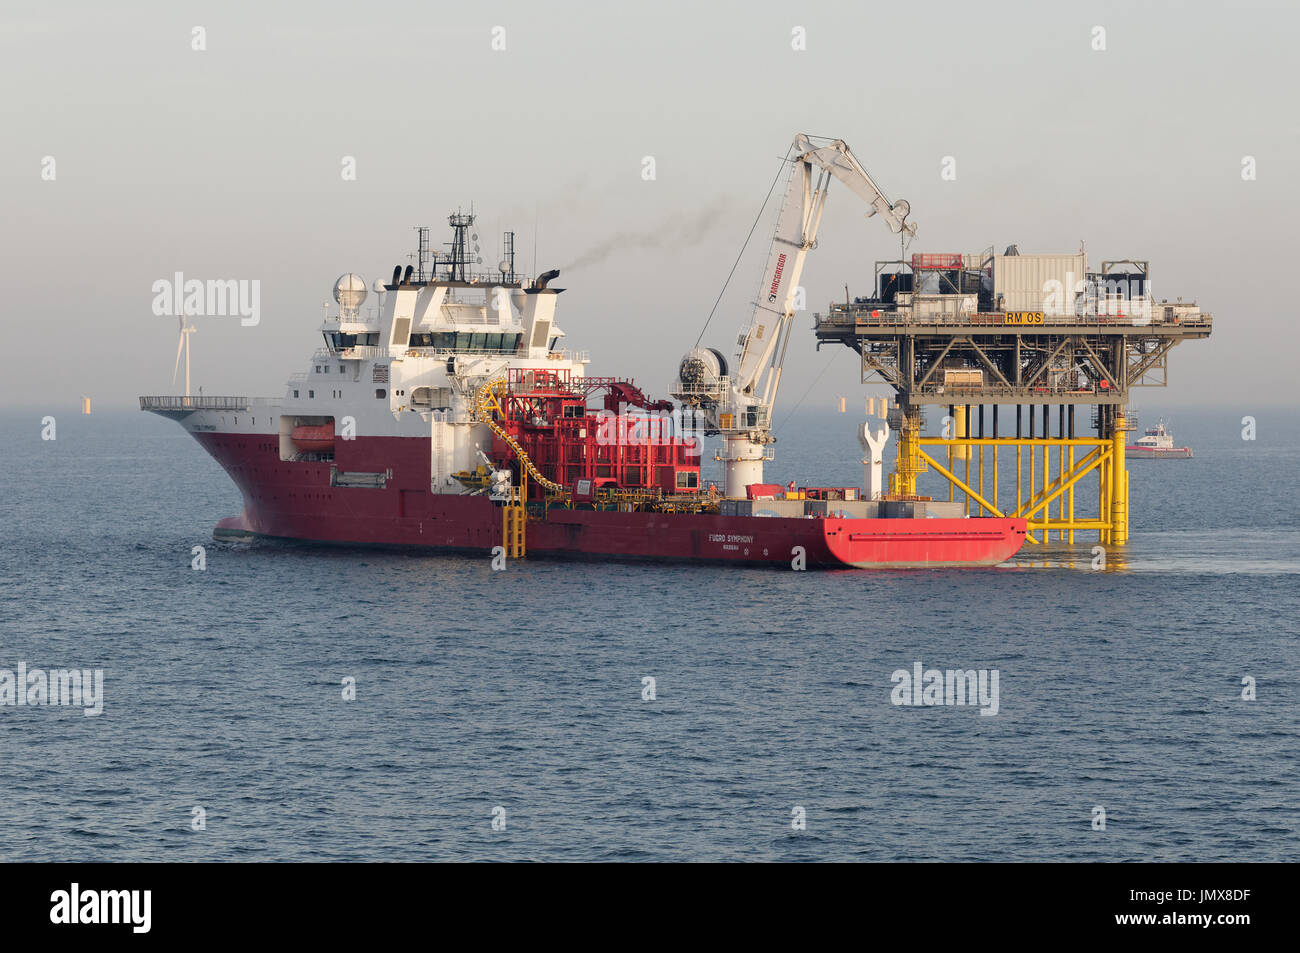 The Fugro Symphony construction vessel installing submarine export cables at the Rampion Offshore Windfarm, England. - Stock Image